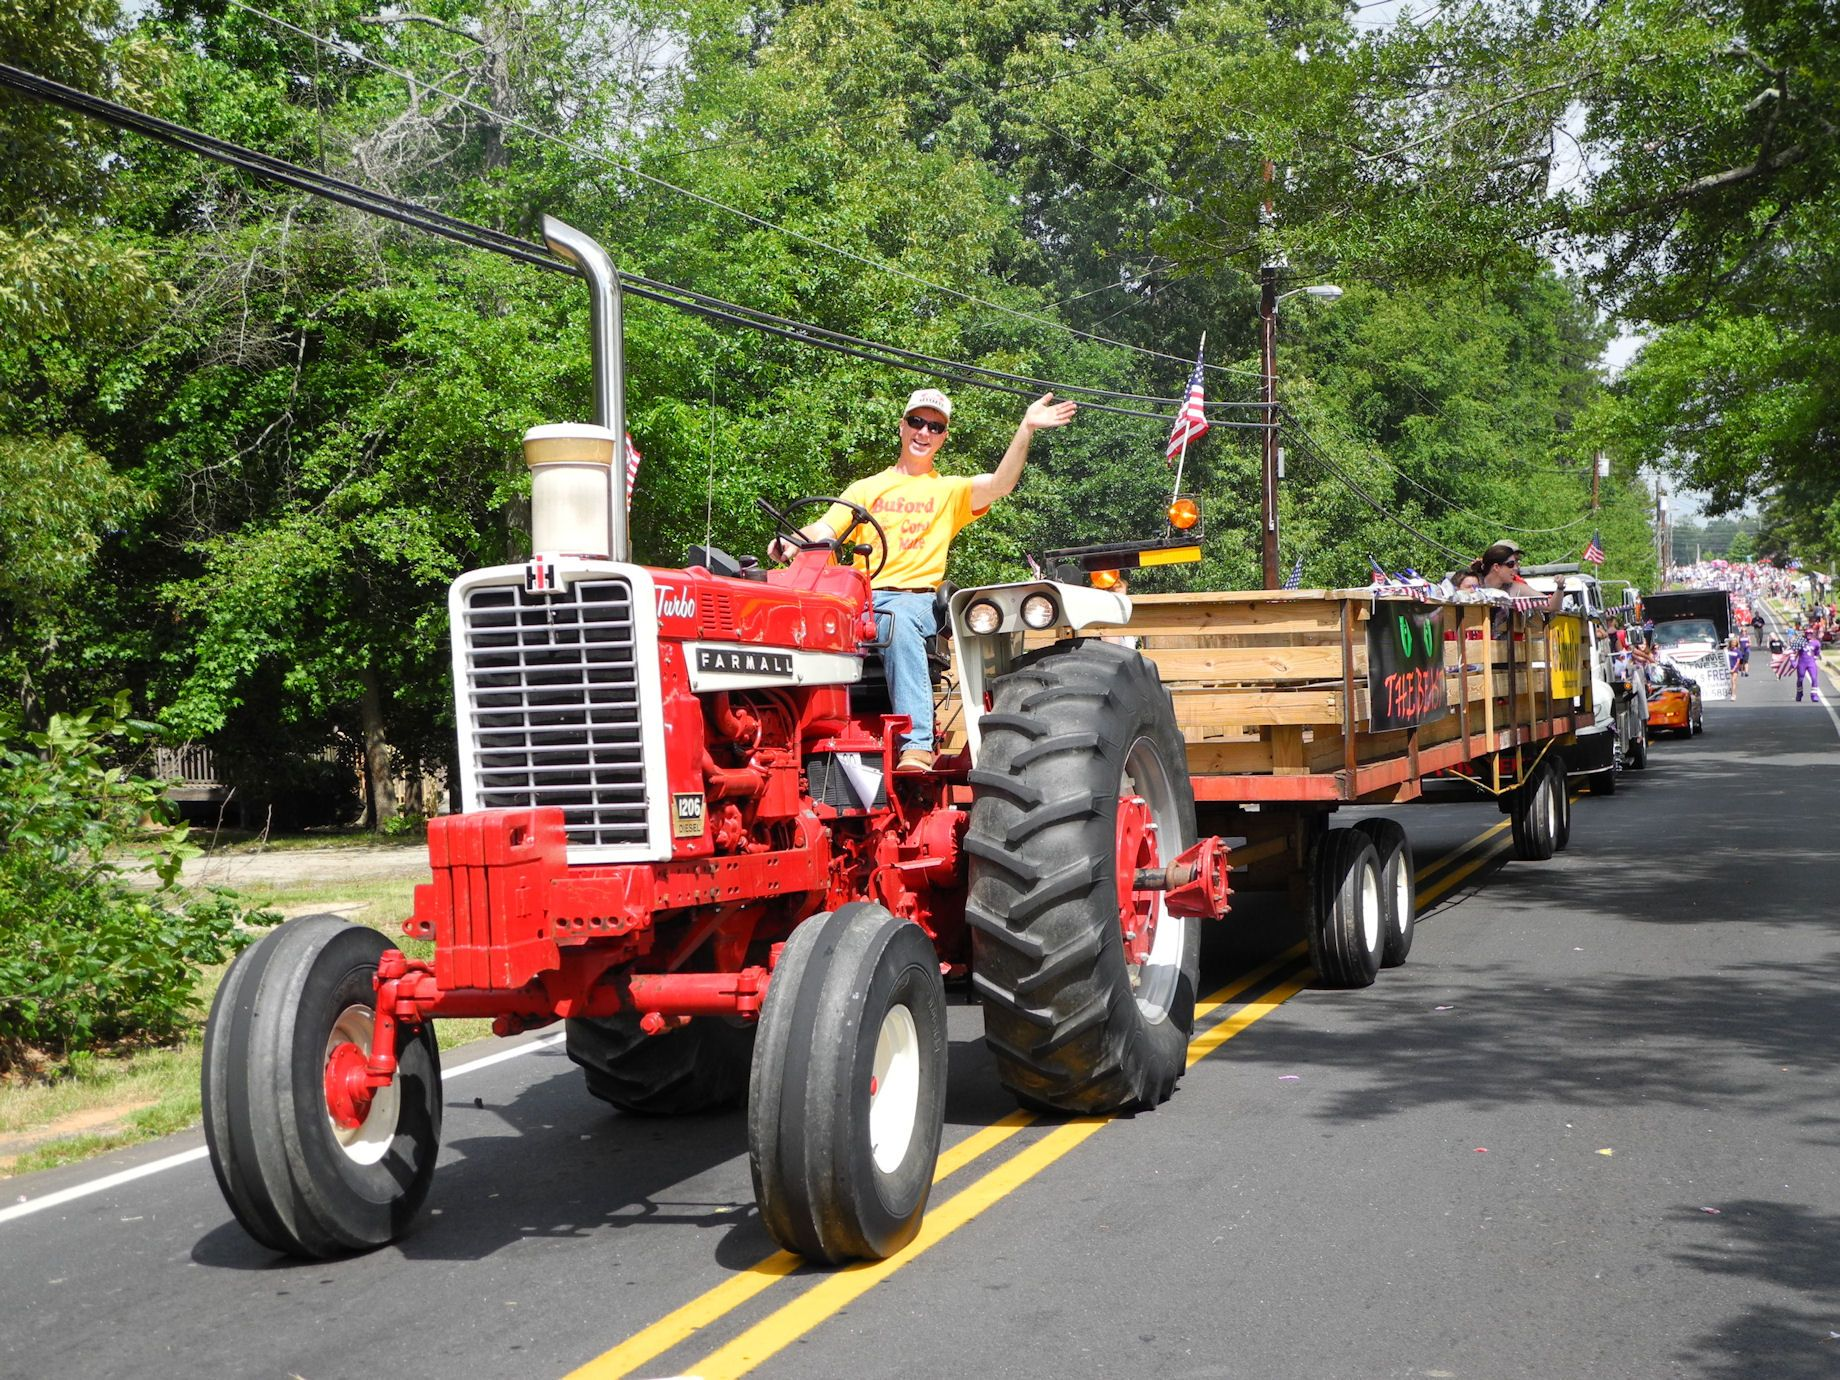 dacula memorial day parade pictures